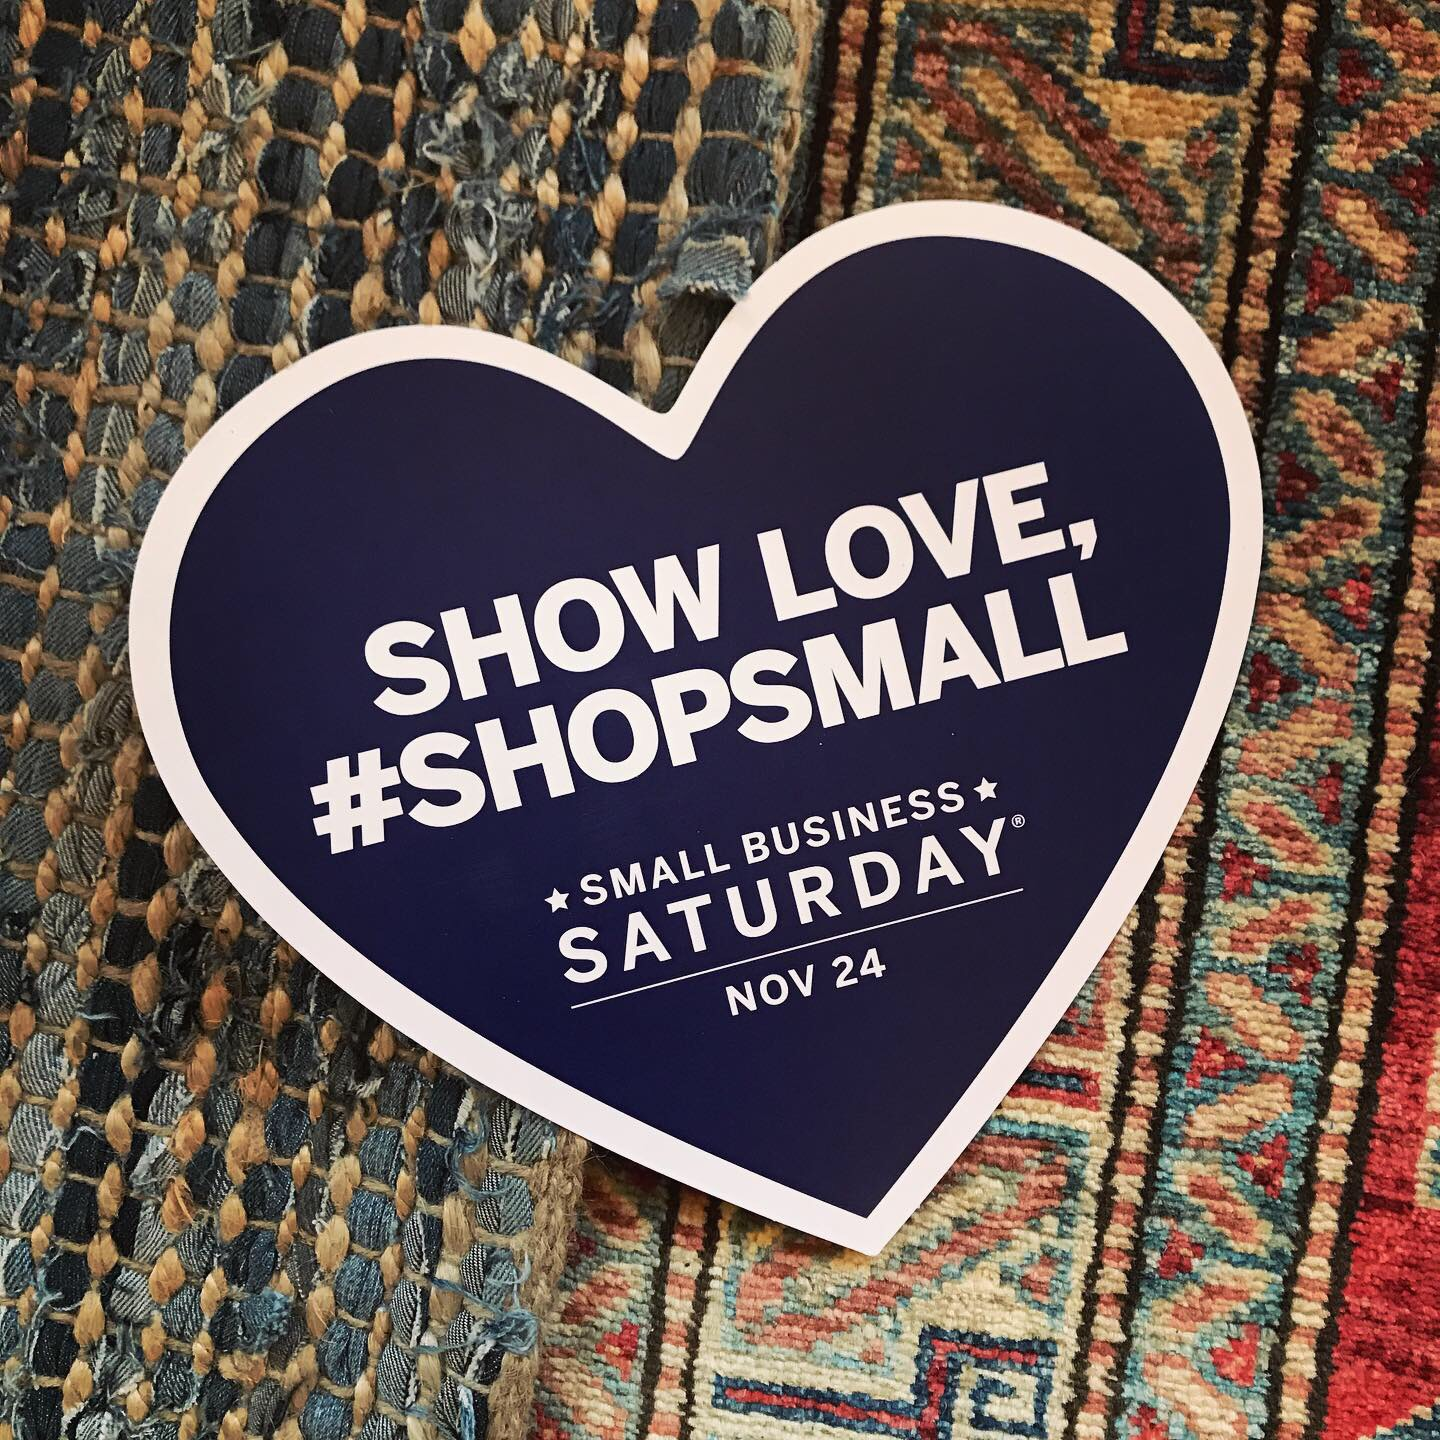 #ShopSmall with us all weekend!